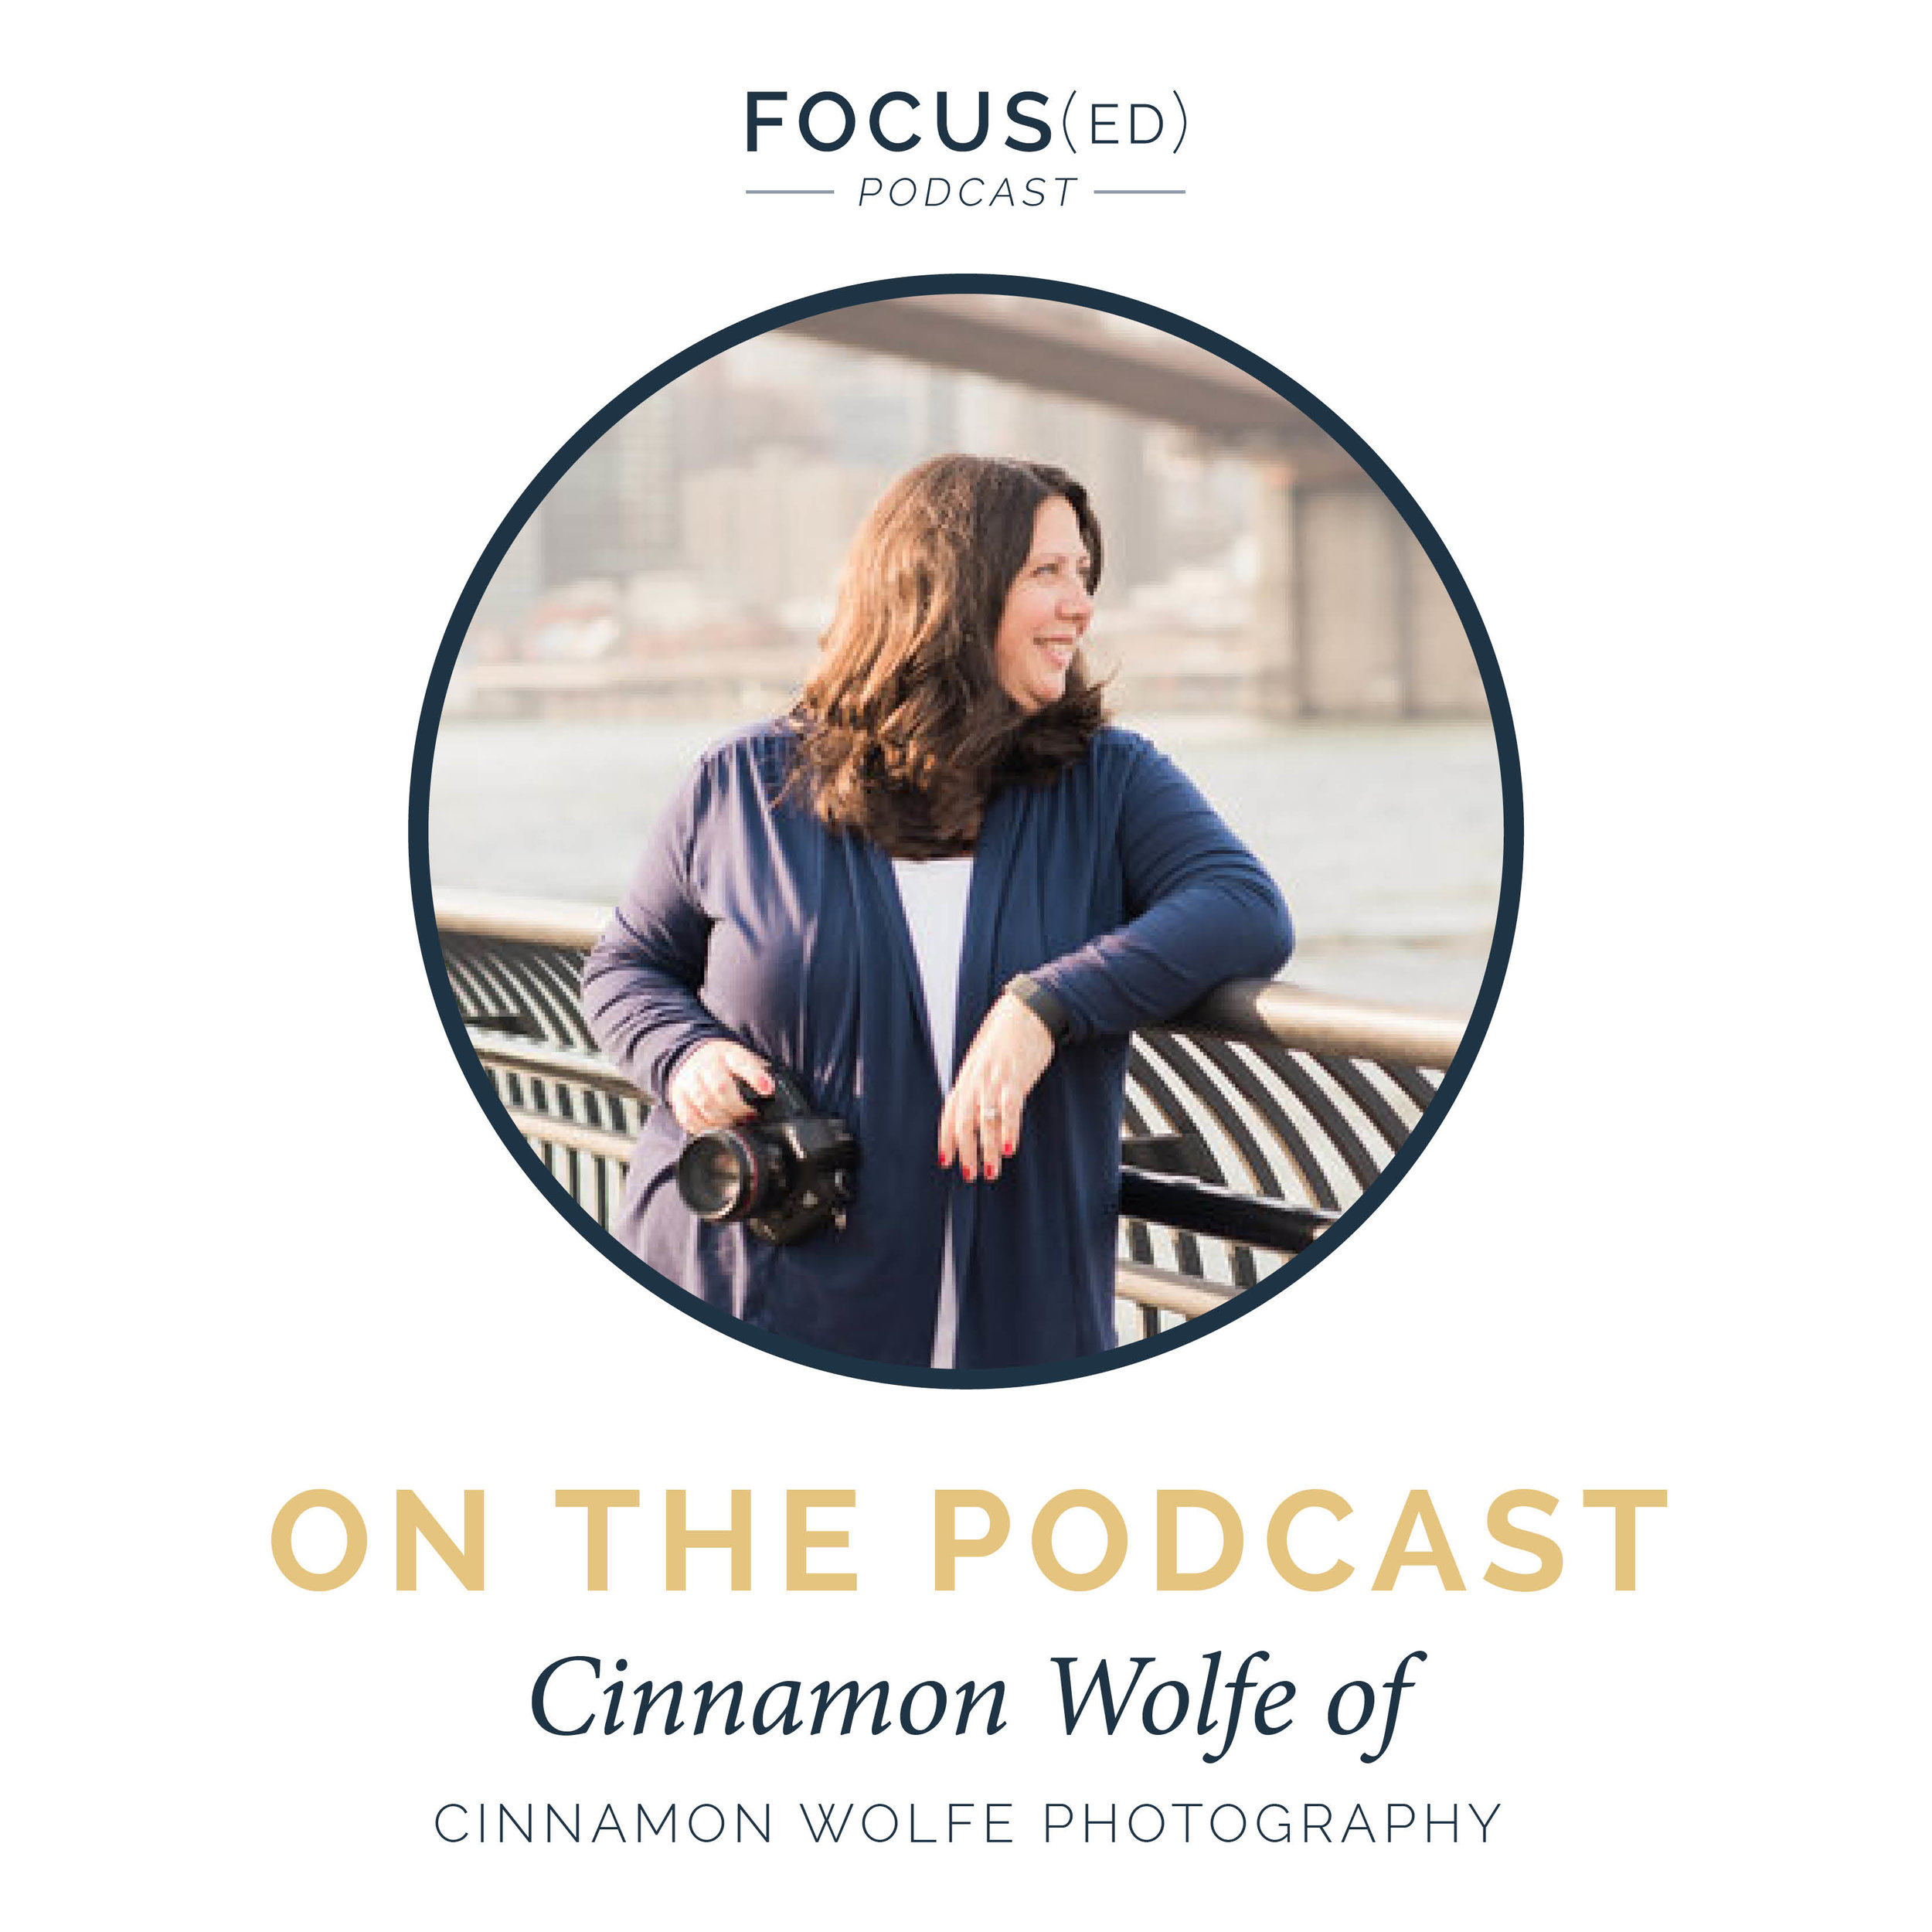 Question & Answer Session with Cinnamon | Focus(ed) Podcast 058